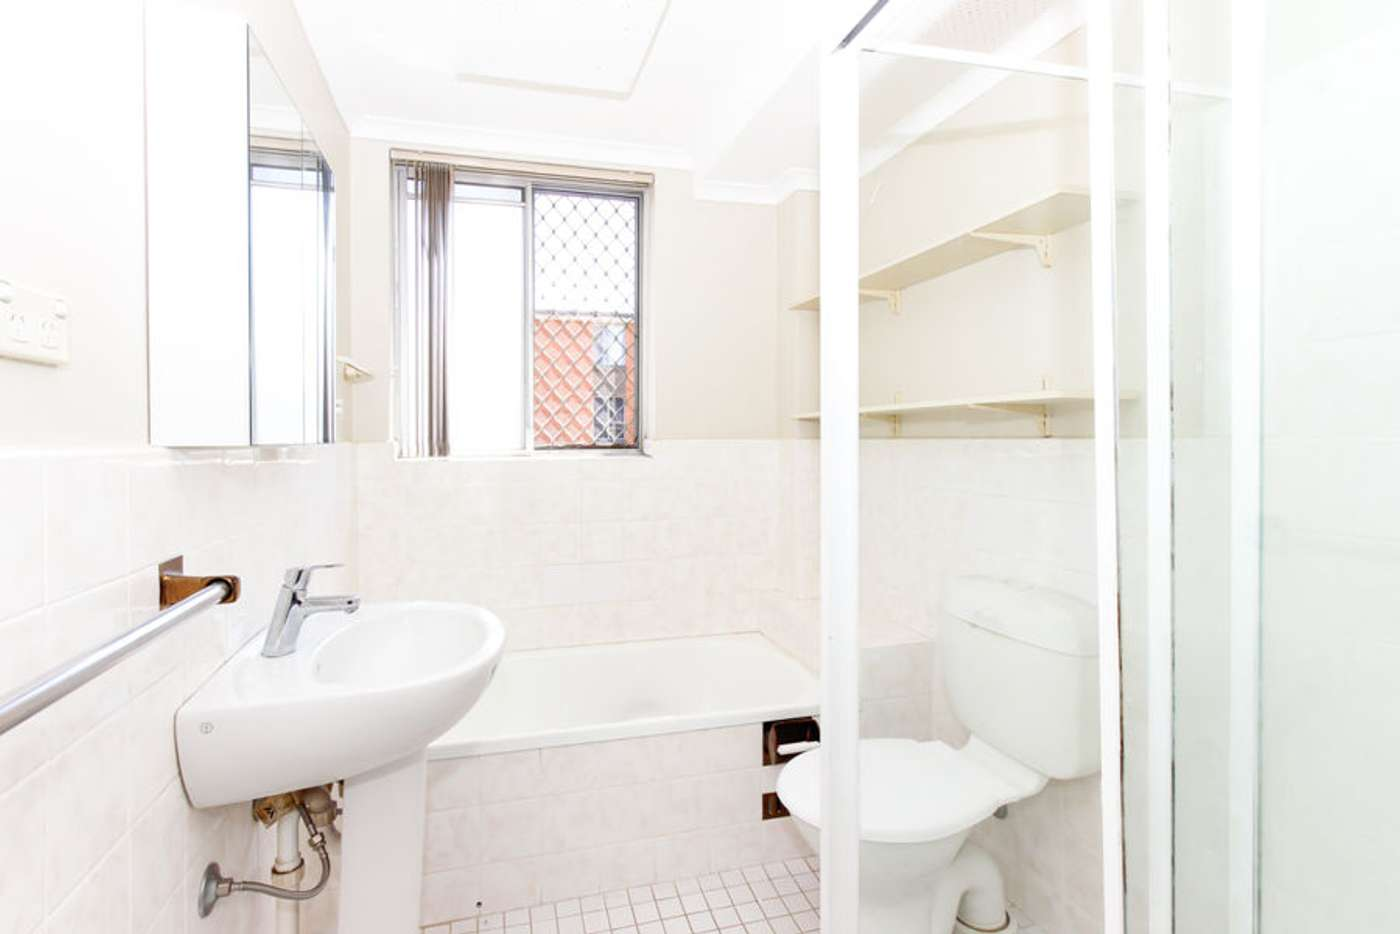 Sixth view of Homely unit listing, 17/10 Edward Street, Ryde NSW 2112